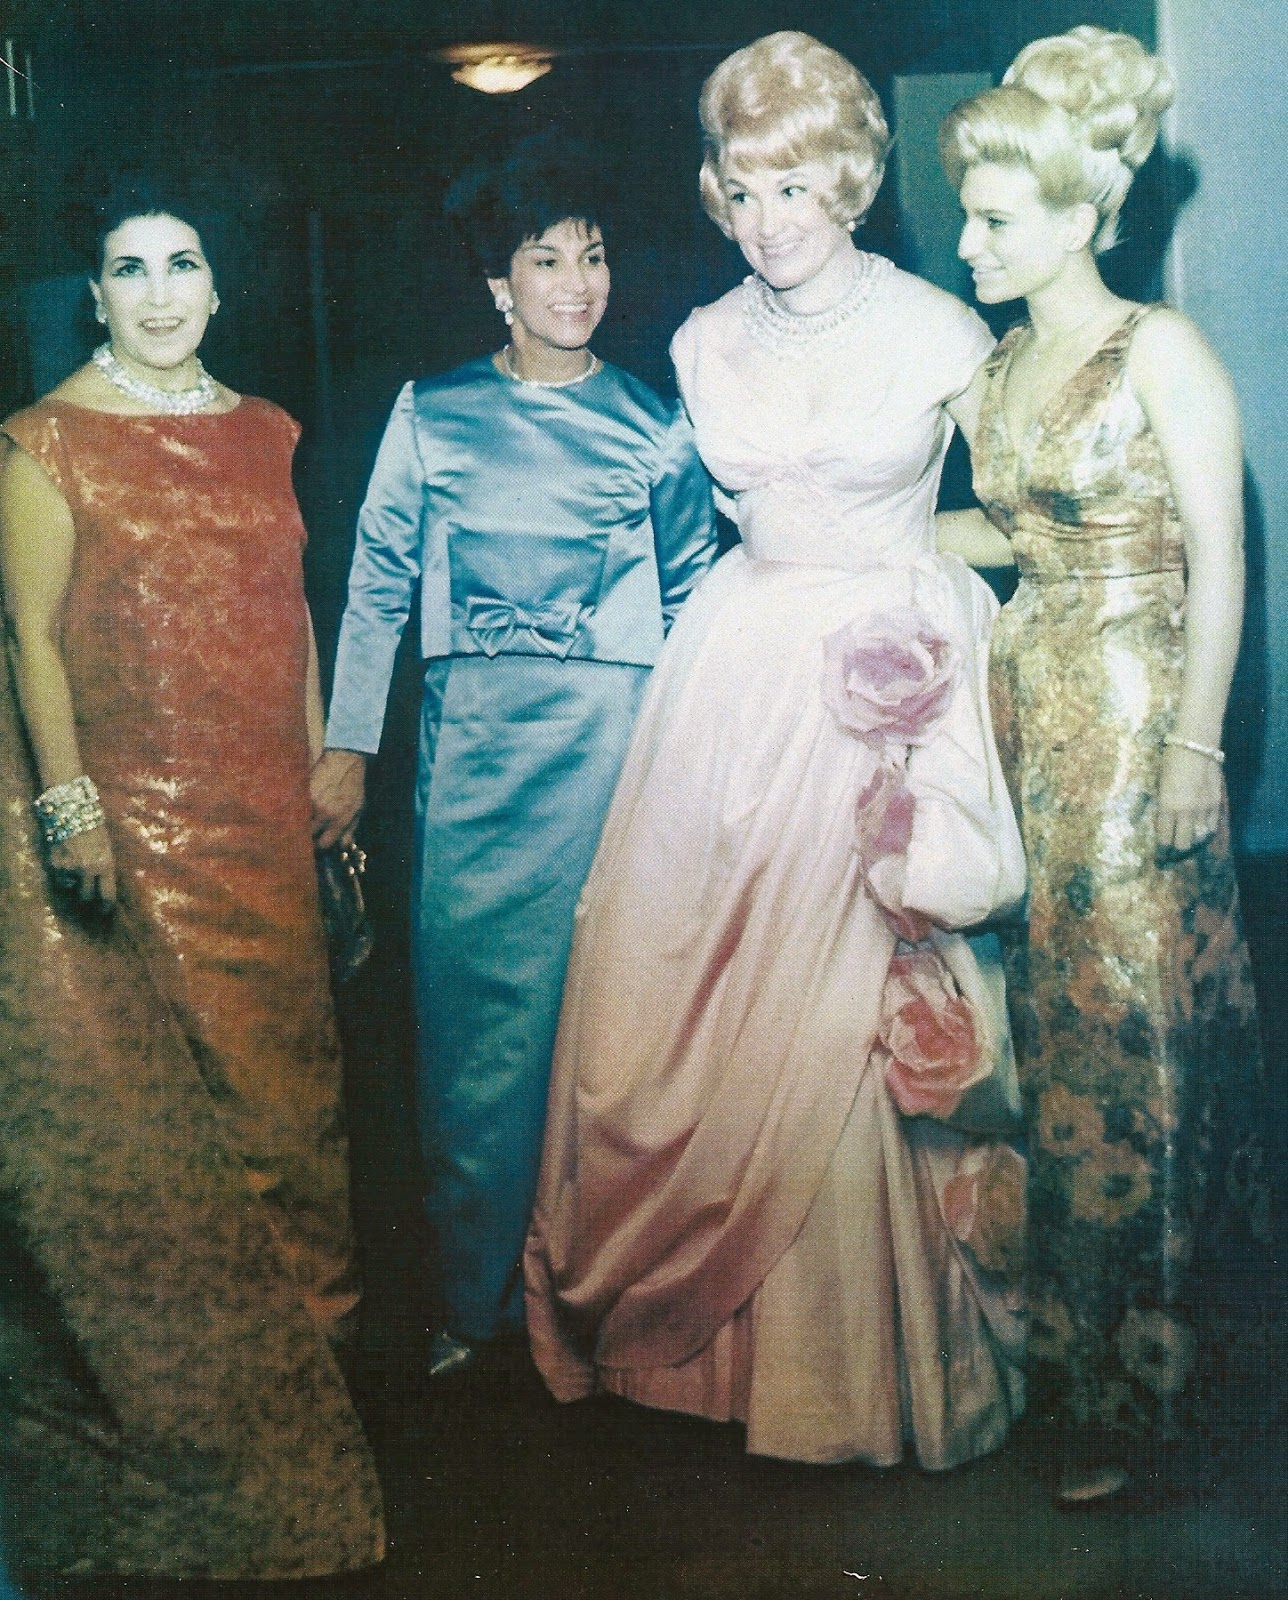 Karen and her mother, FLORENCE FELLER KRIENDLER, with sopranos LICIA ALBANESE and DOROTHY KIRSTEN at the Gala celebrating the final performance at the original Metropolitan Opera House on Broadway between 39th and 40th Streets